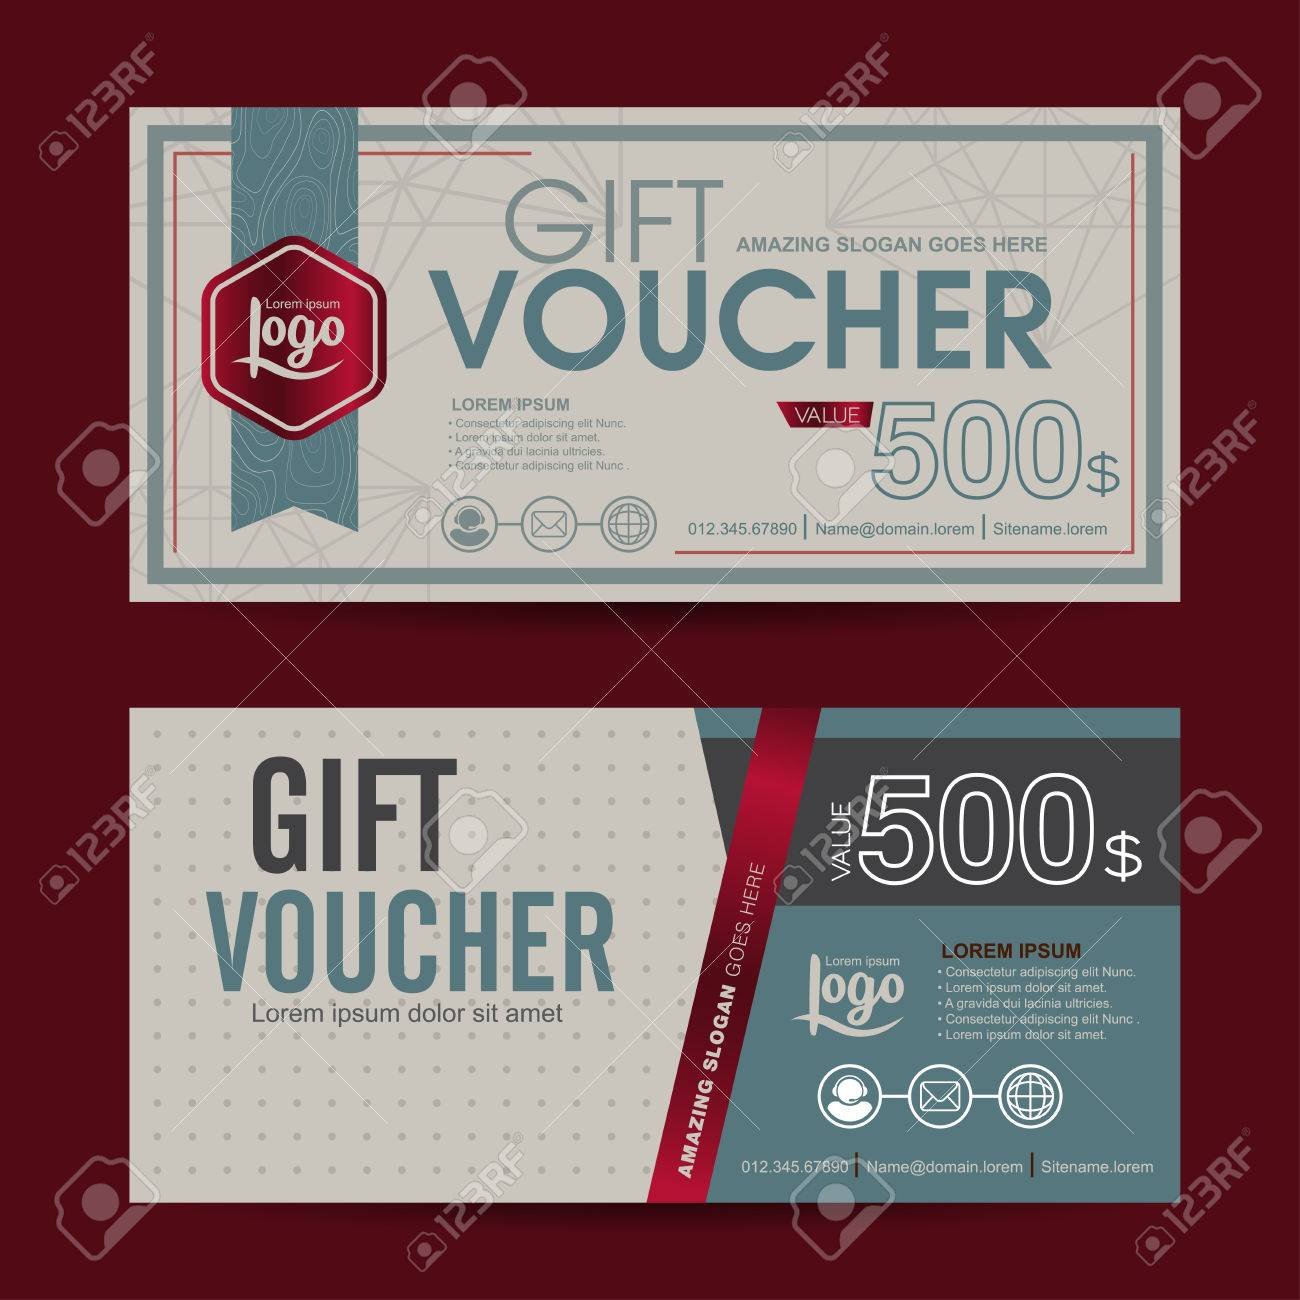 Gift voucher template with colorful patterncute gift voucher gift voucher template with colorful patterncute gift voucher certificate coupon design template collection yelopaper Image collections